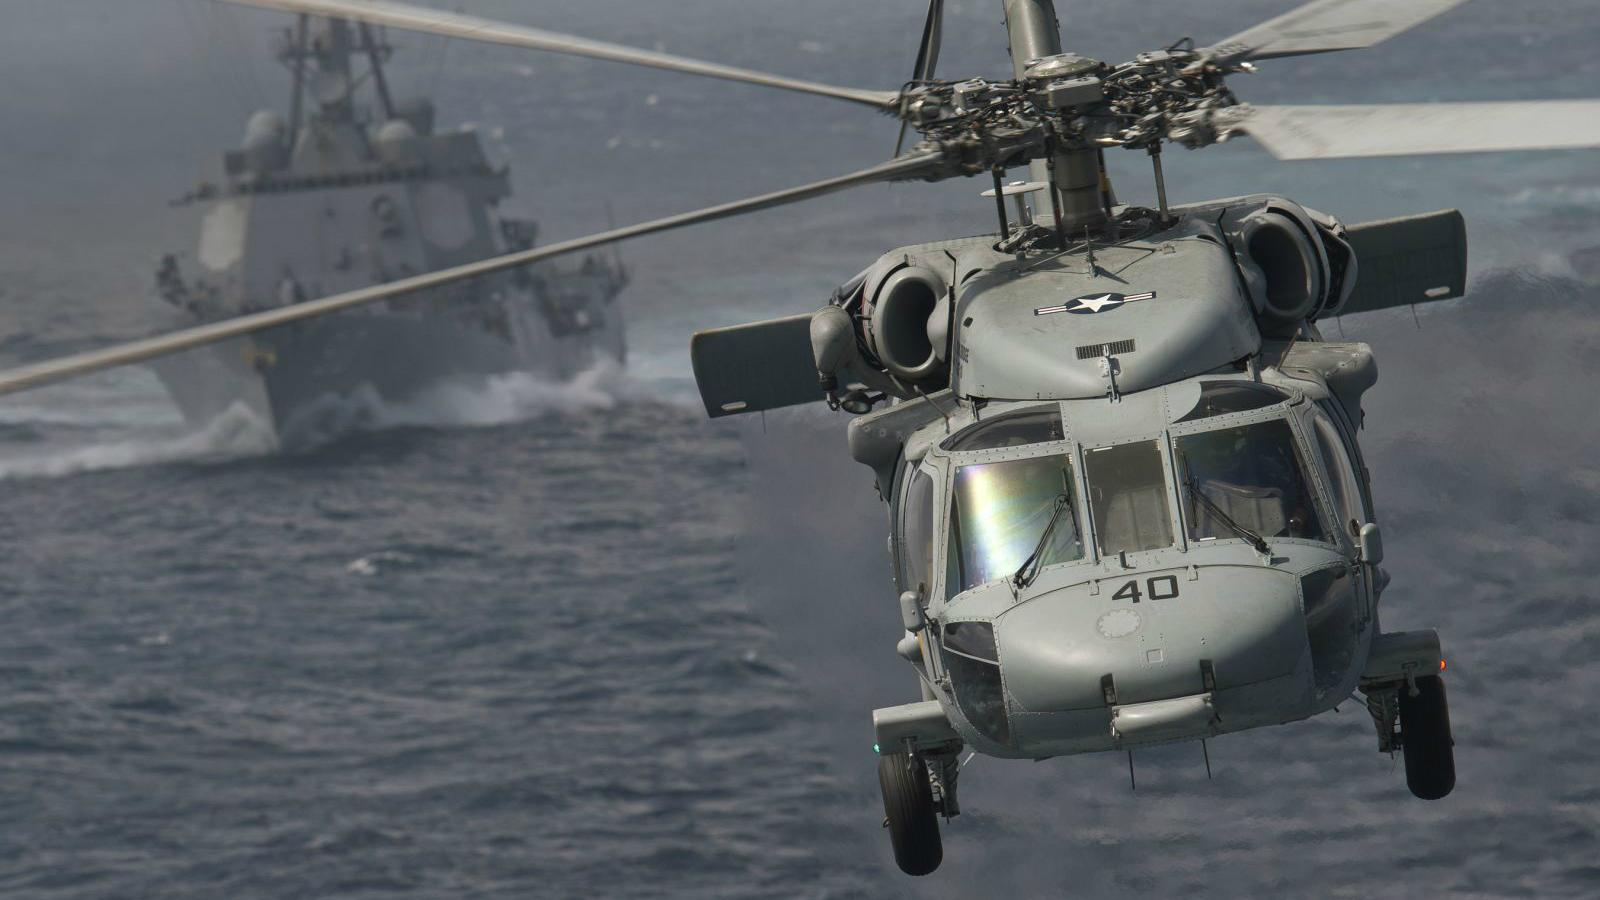 US Navy Helicopter Crashes In Kuwait